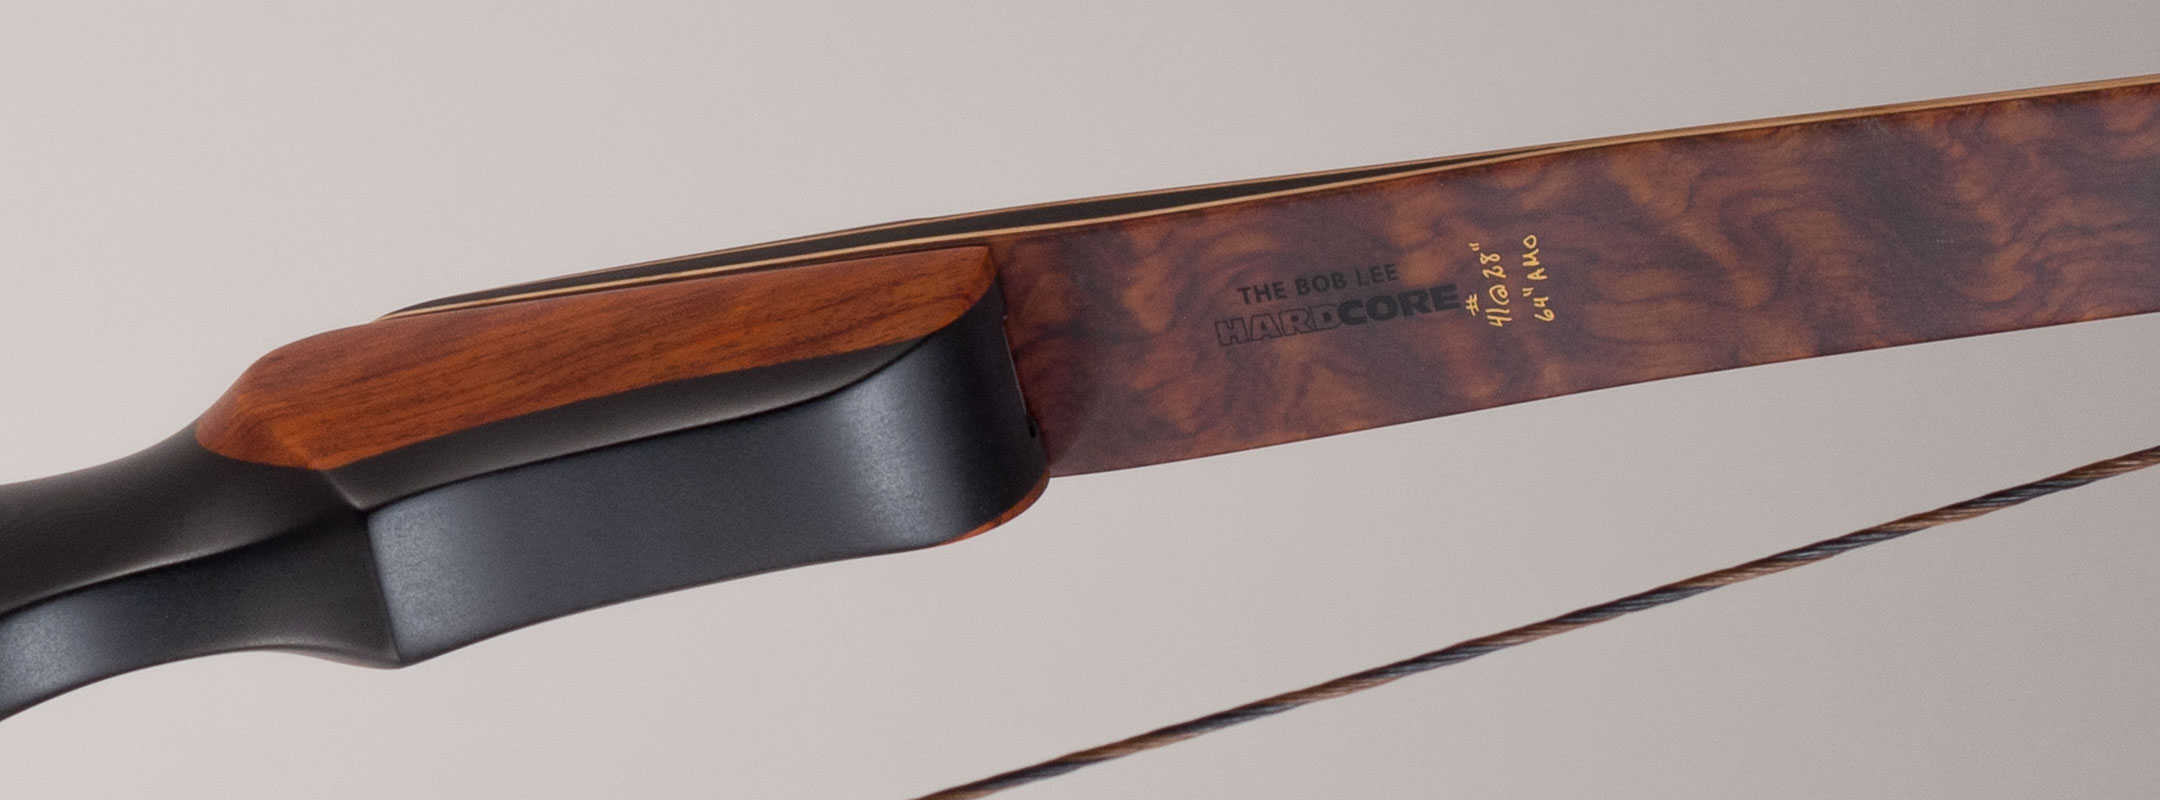 Handle and limbs of a traditional hunting longbow